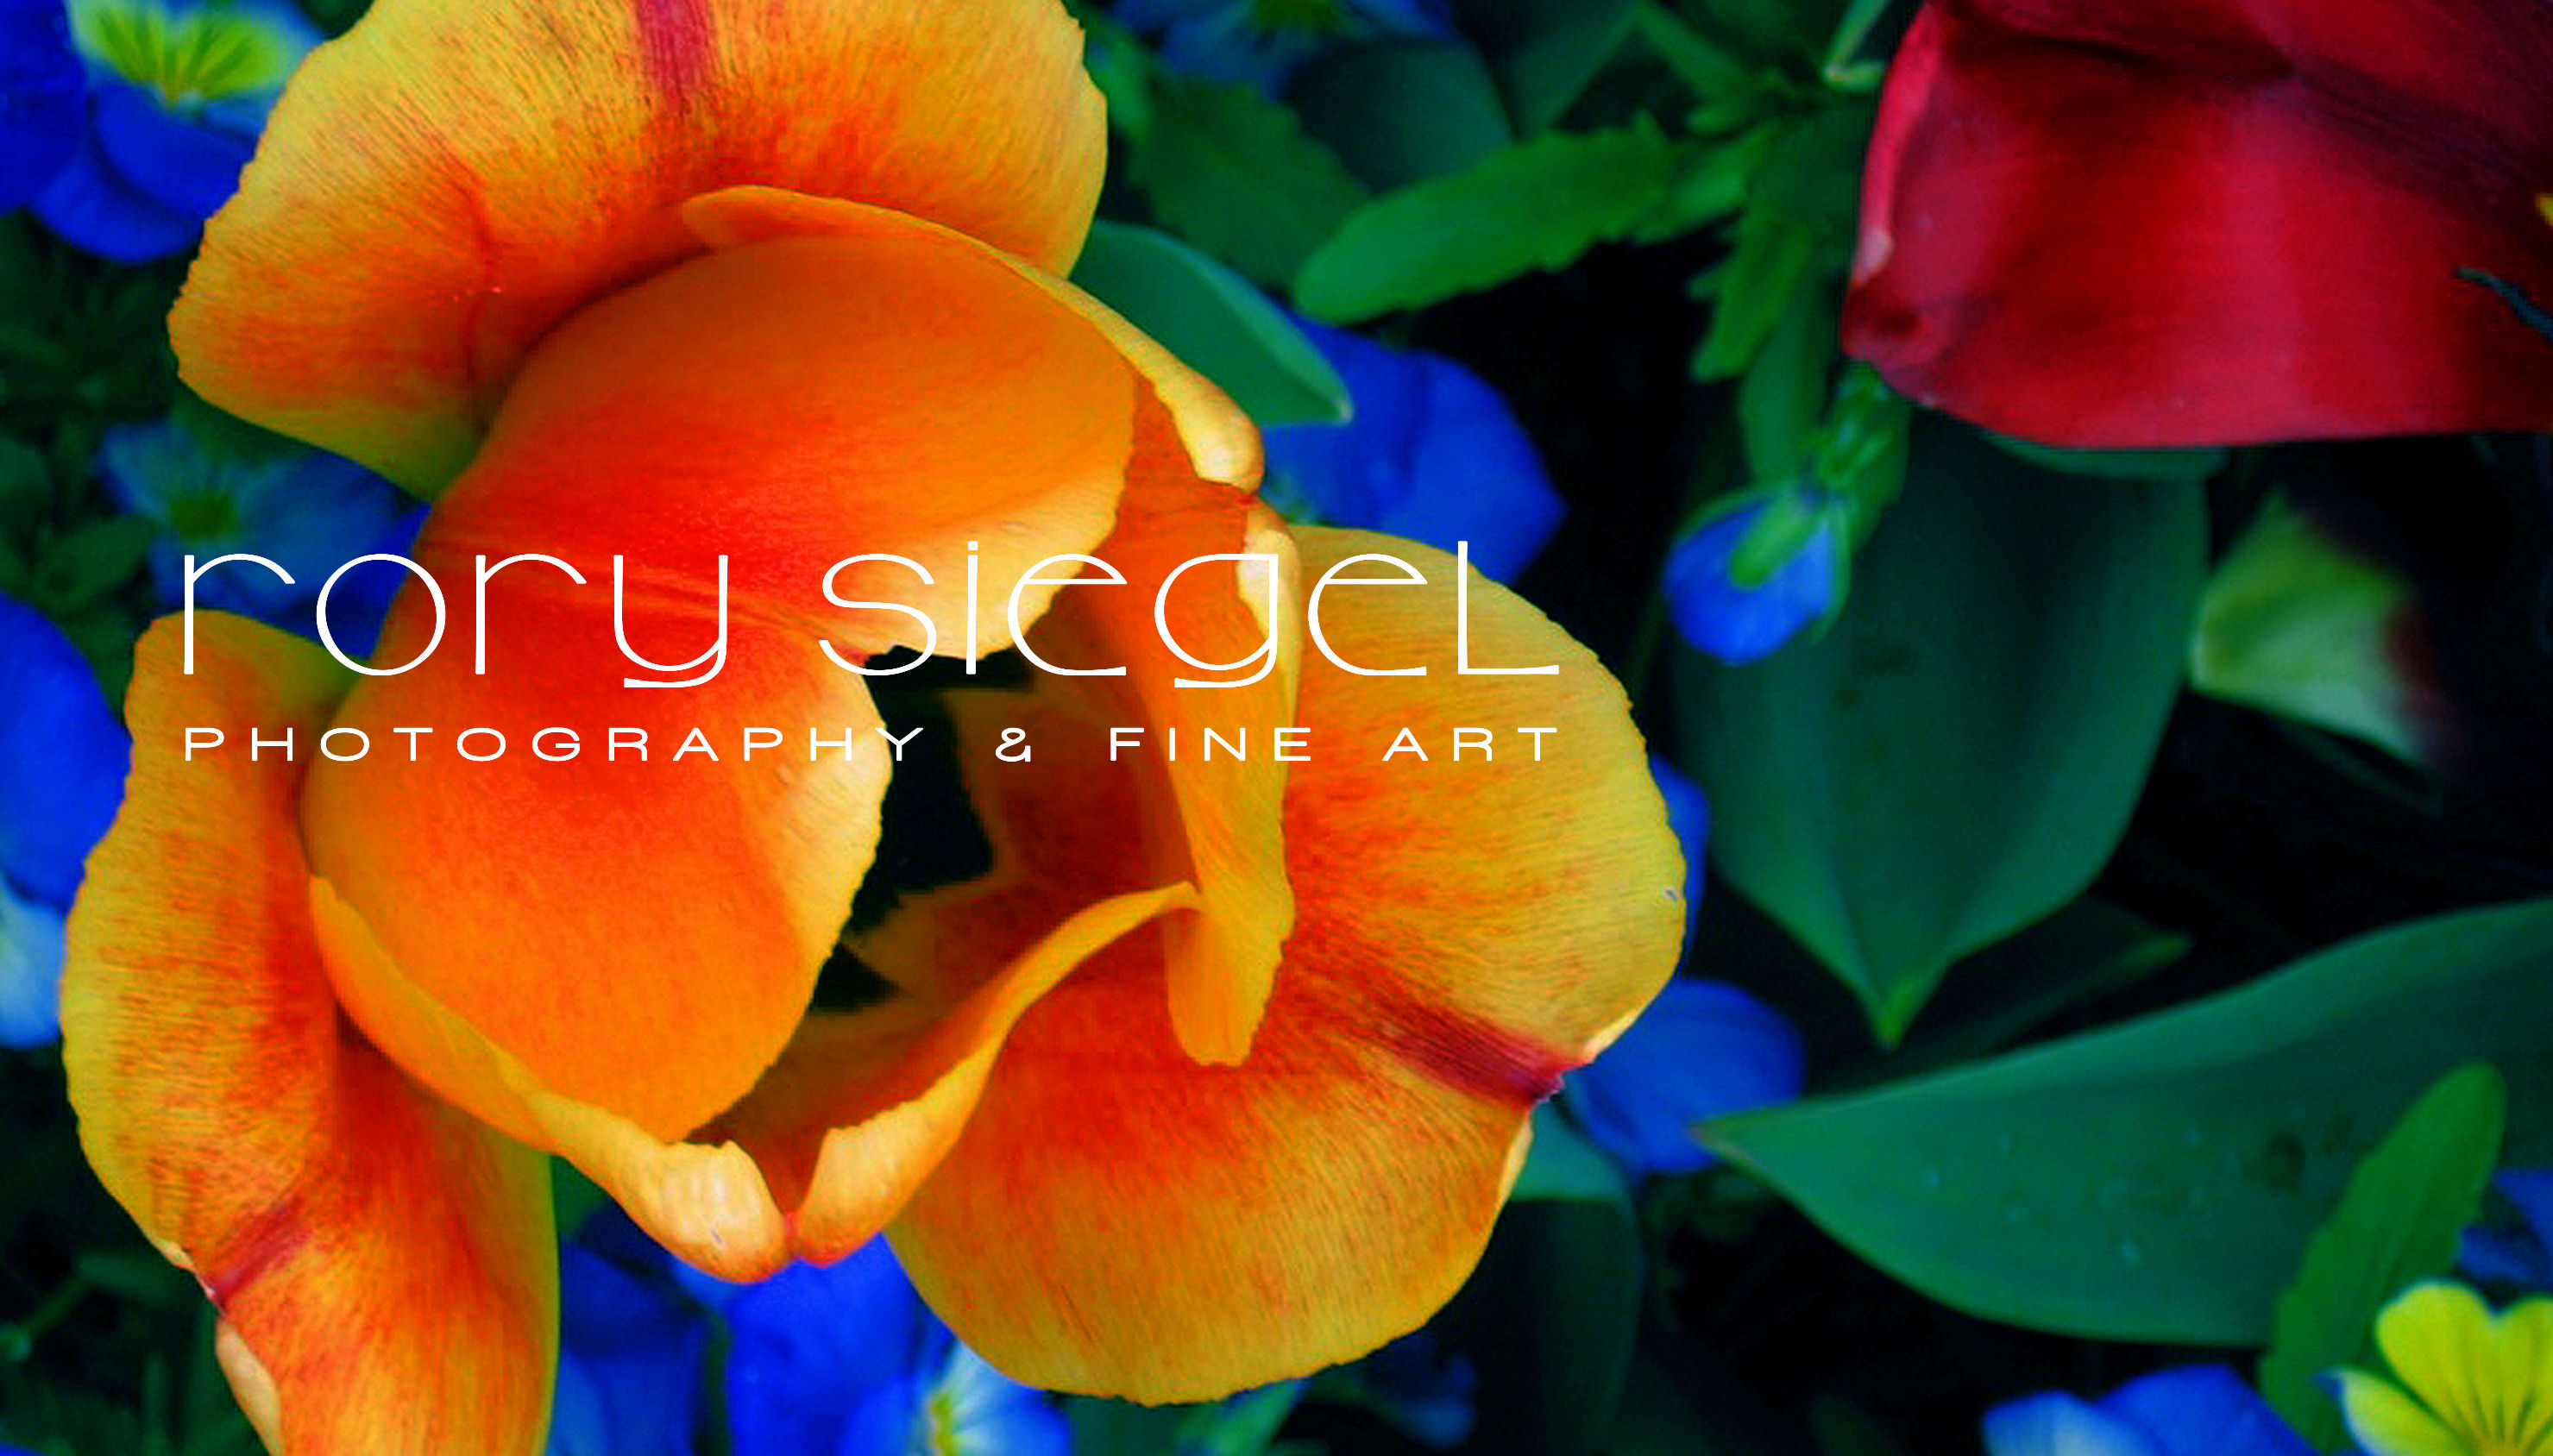 Rory Siegel - Artist Website